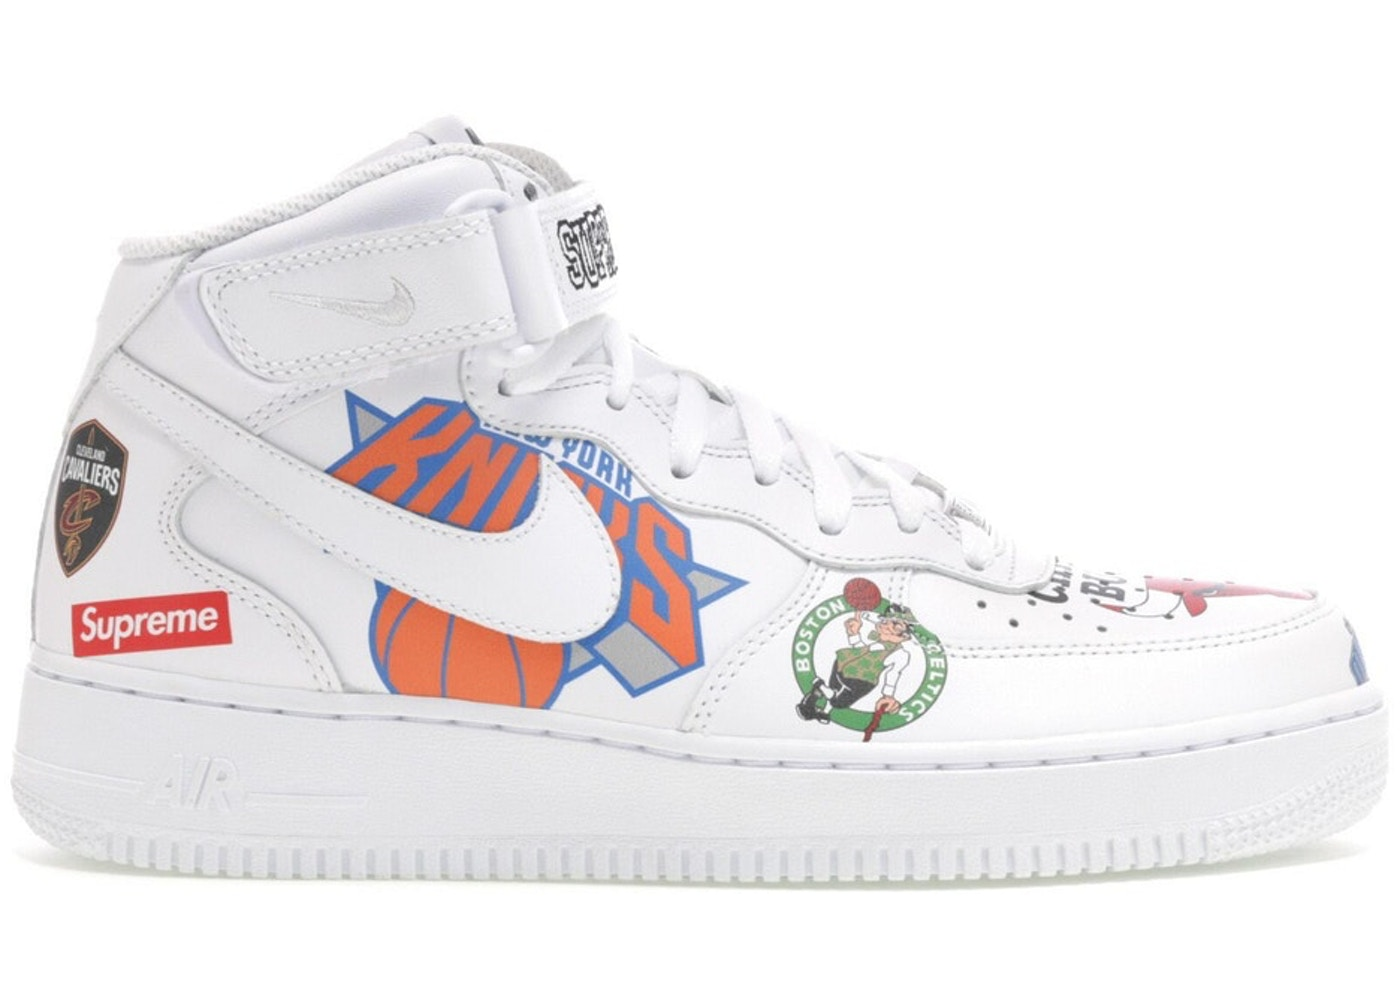 online retailer 76568 e1468 Air Force 1 Mid Supreme NBA White